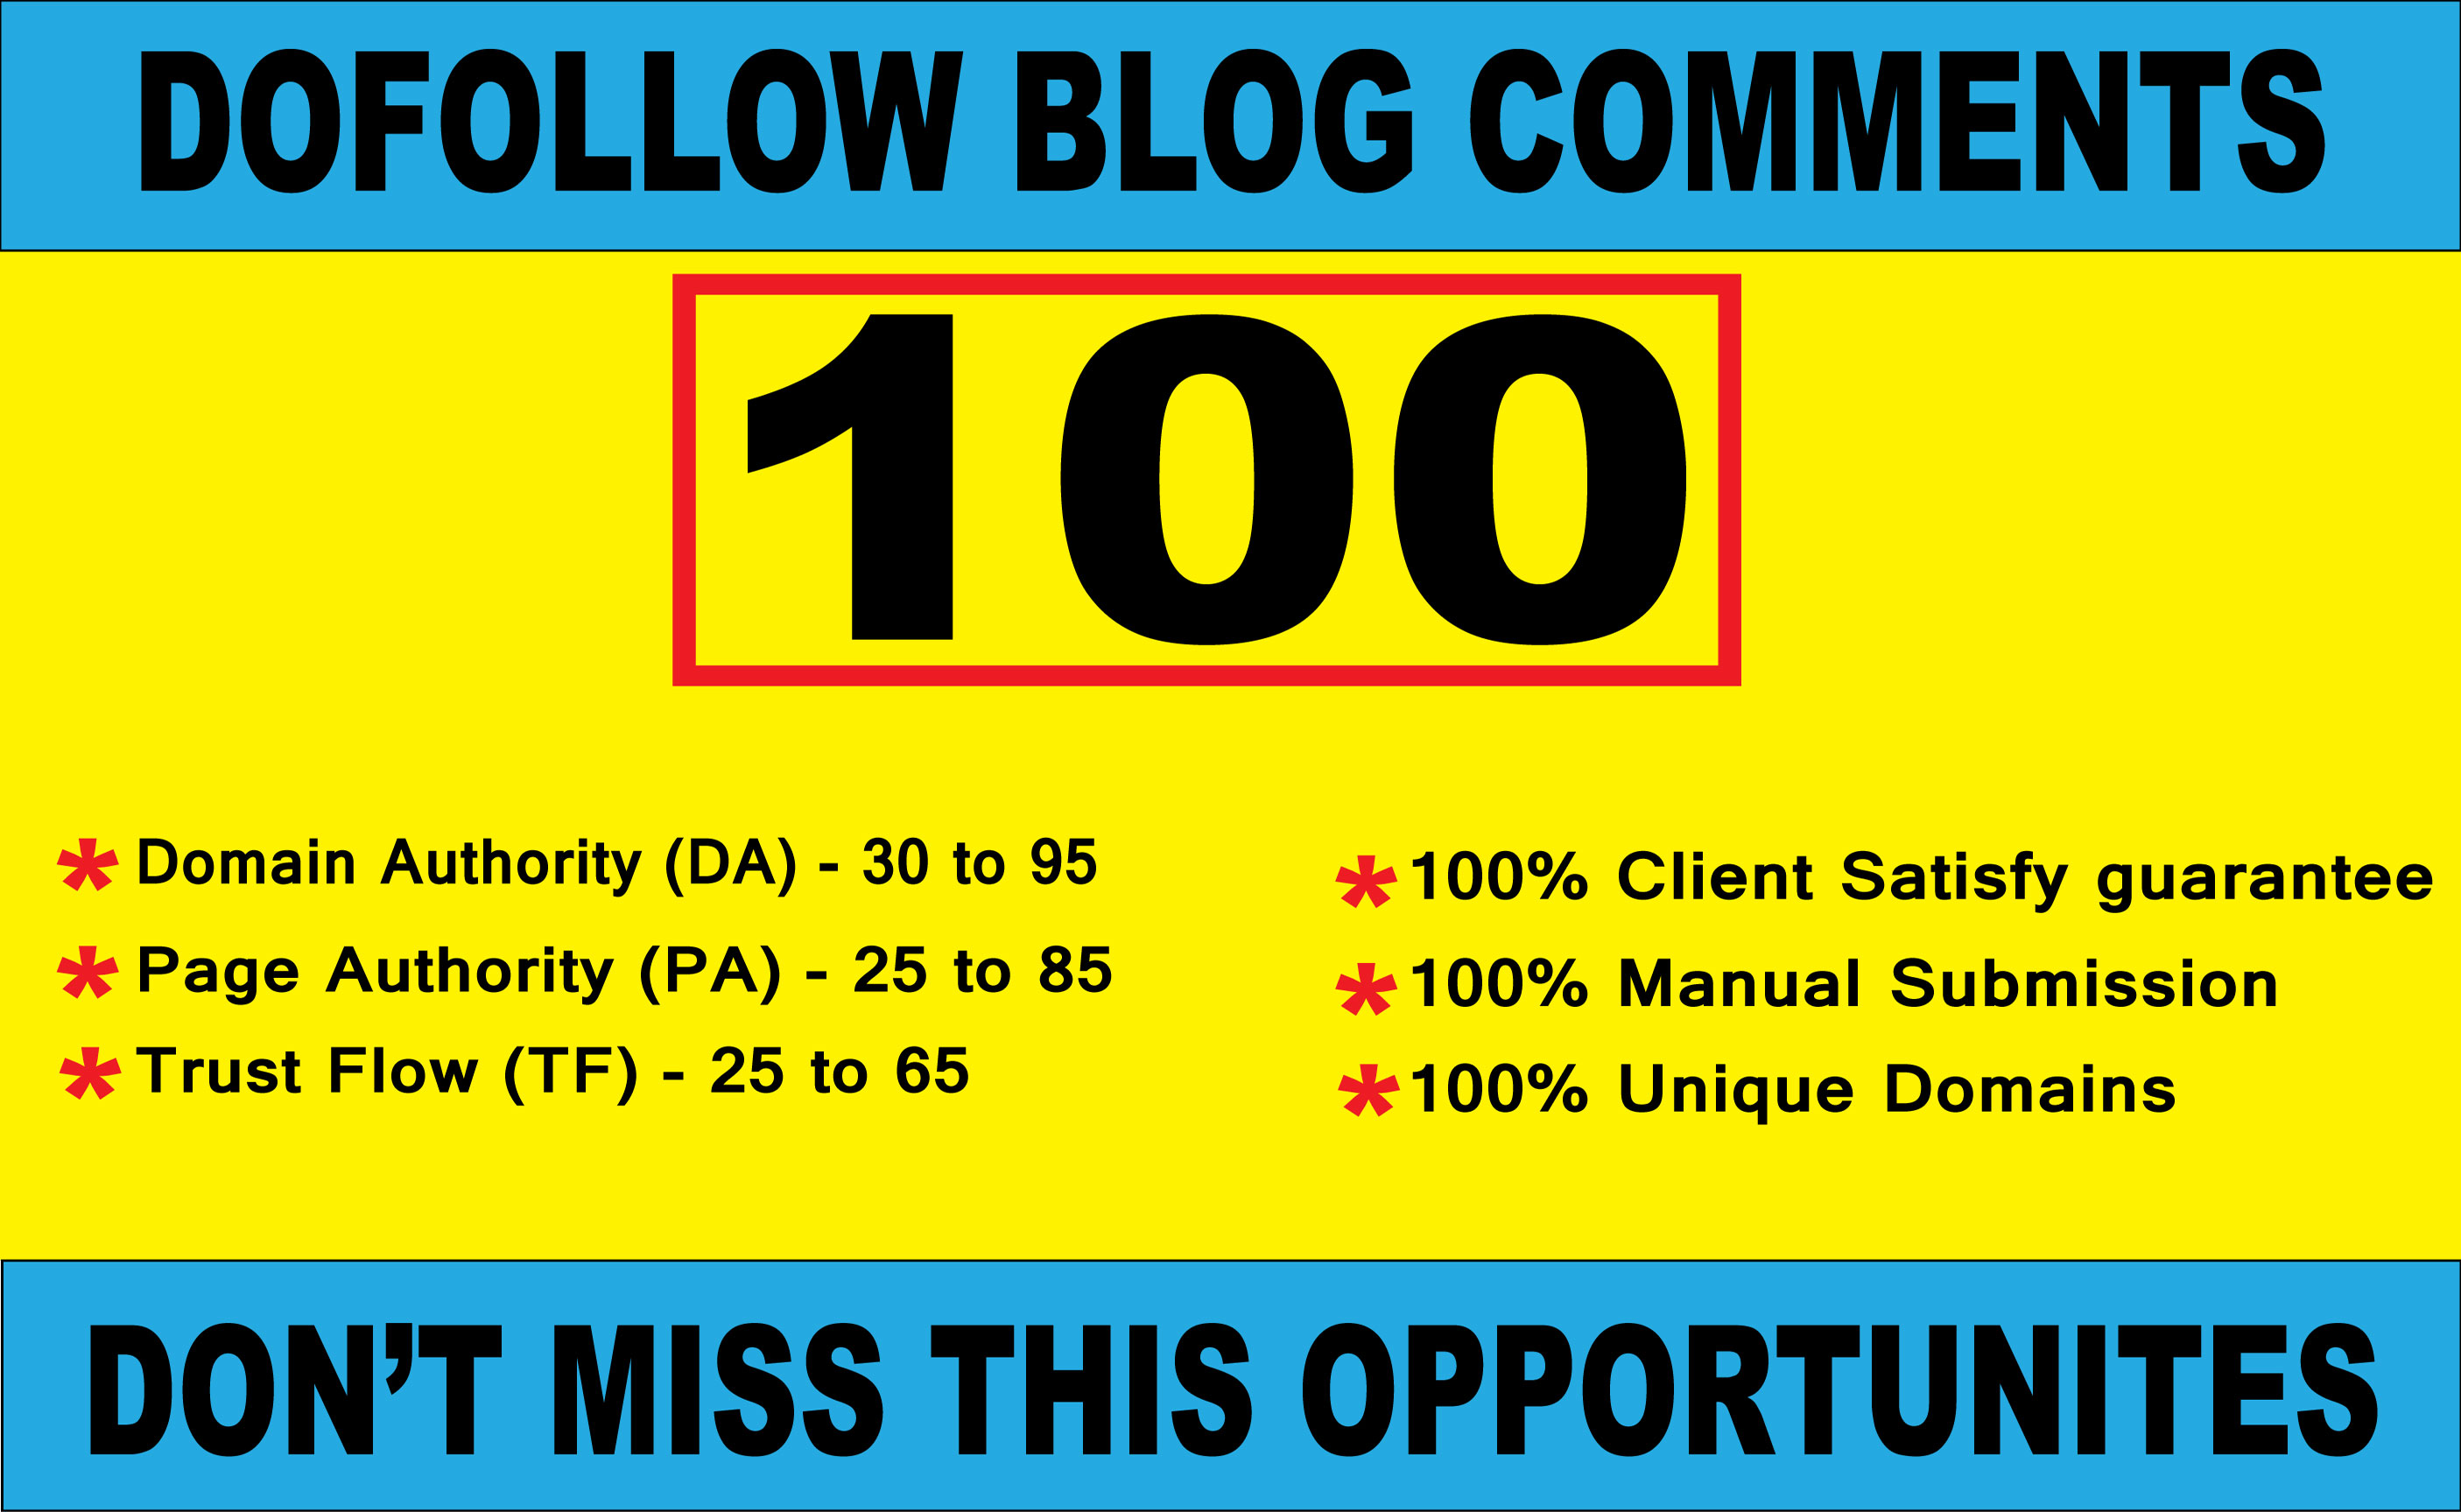 I will create 100 high quality Dofollow blog comments